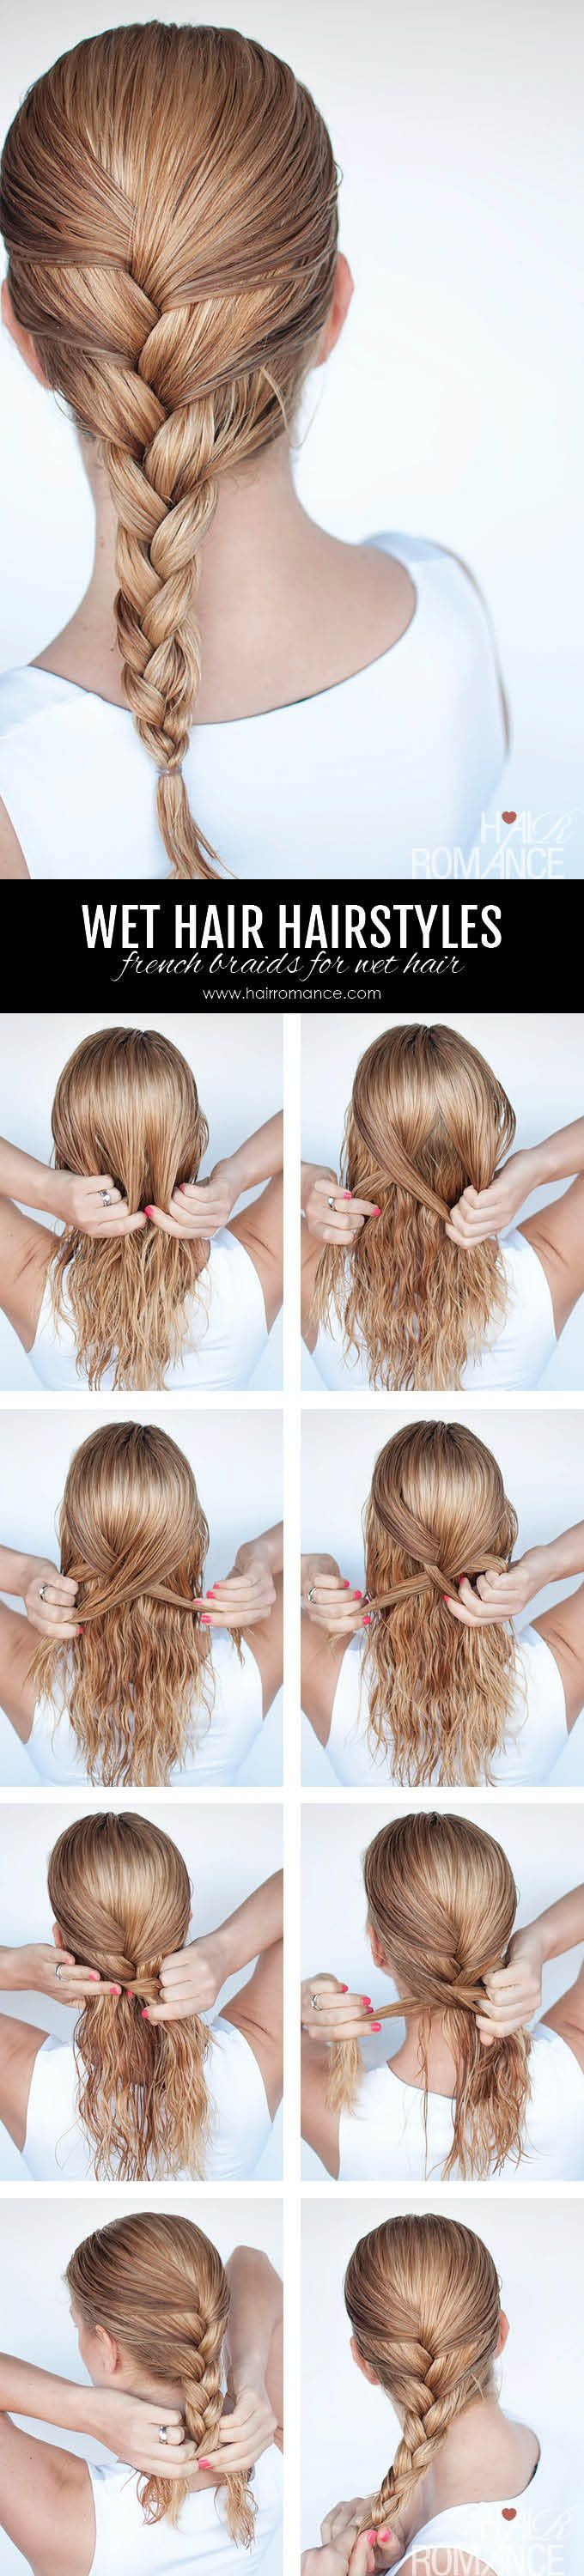 Hairstyles For Wet Hair  French Braid Tutorial